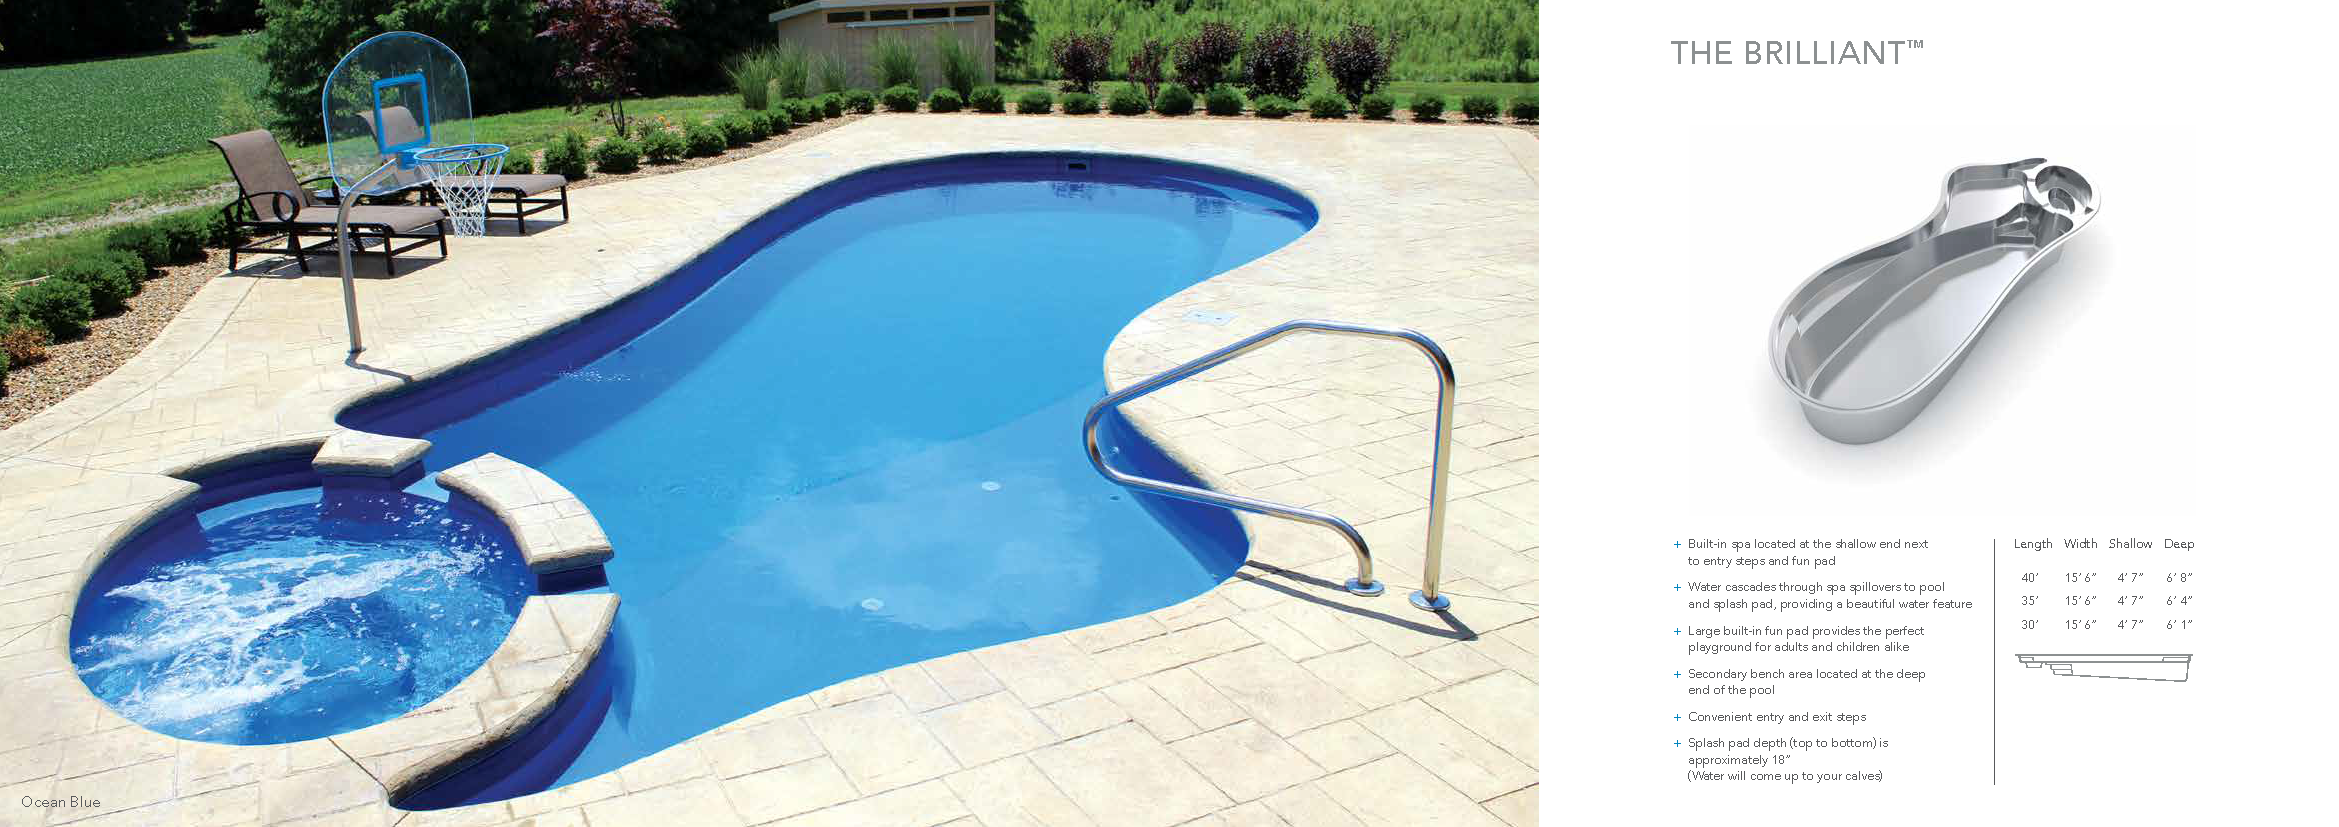 Imagine Pools Consumer Brochure 2018-1001_Page_17